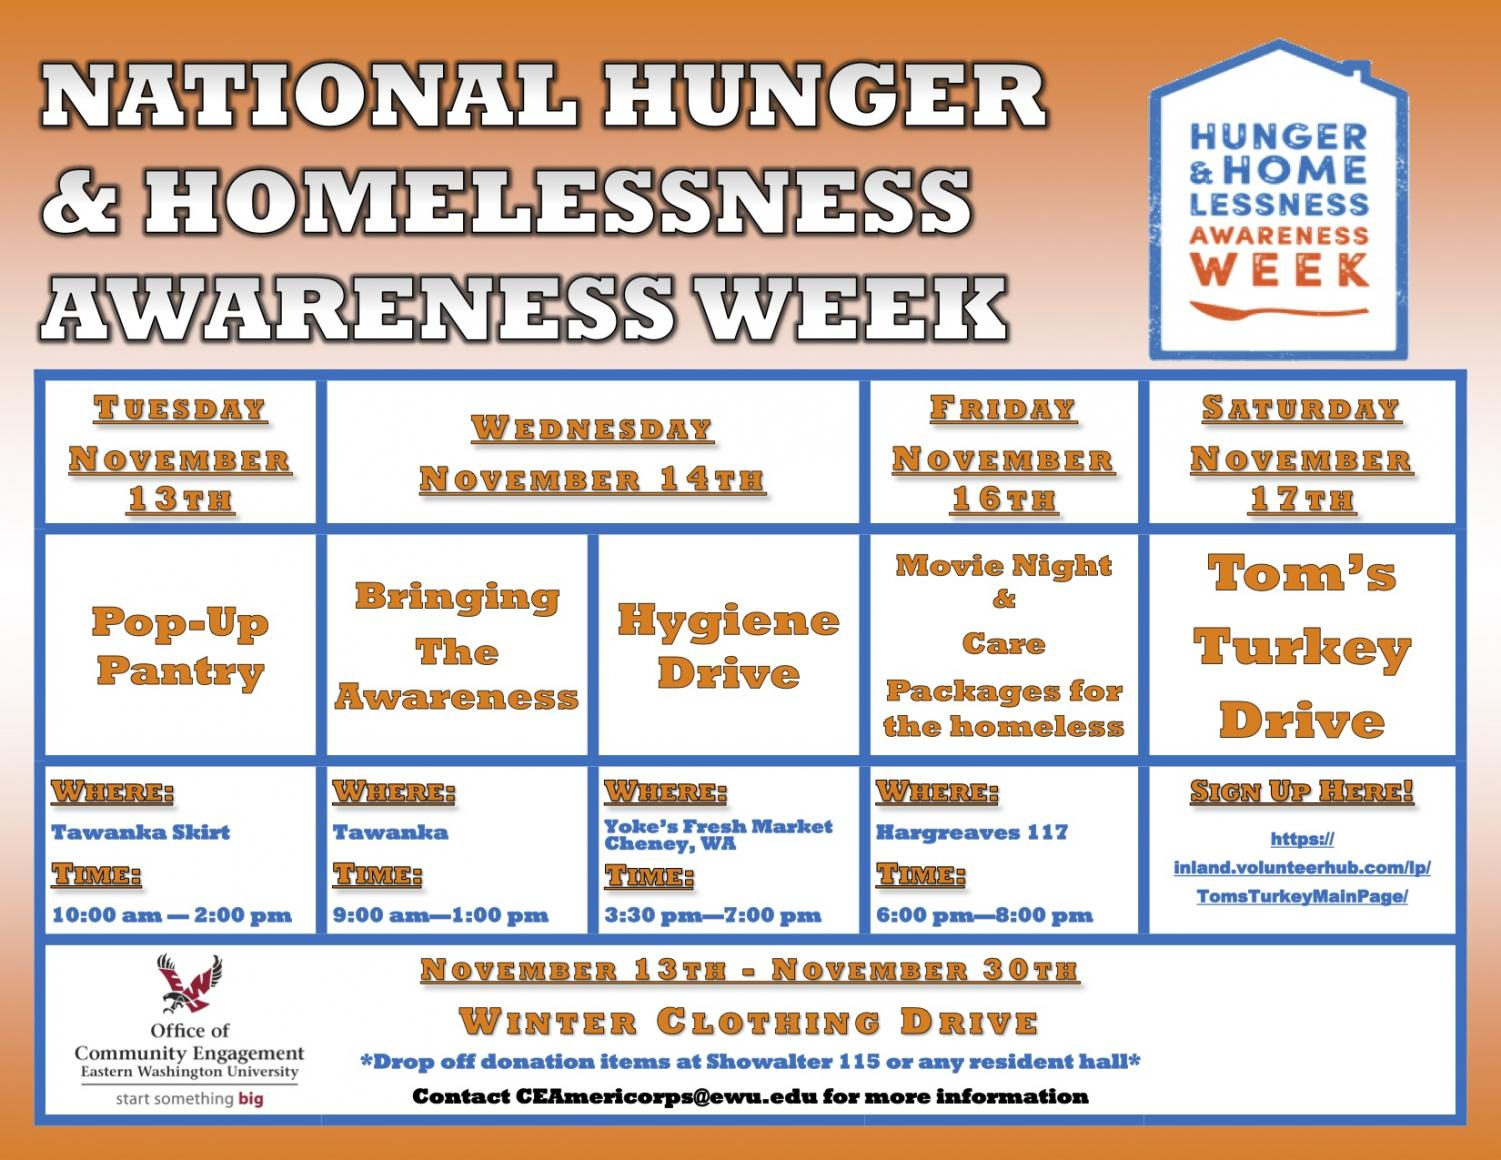 Schedule of events for Hunger and Homelessness Awareness Week.